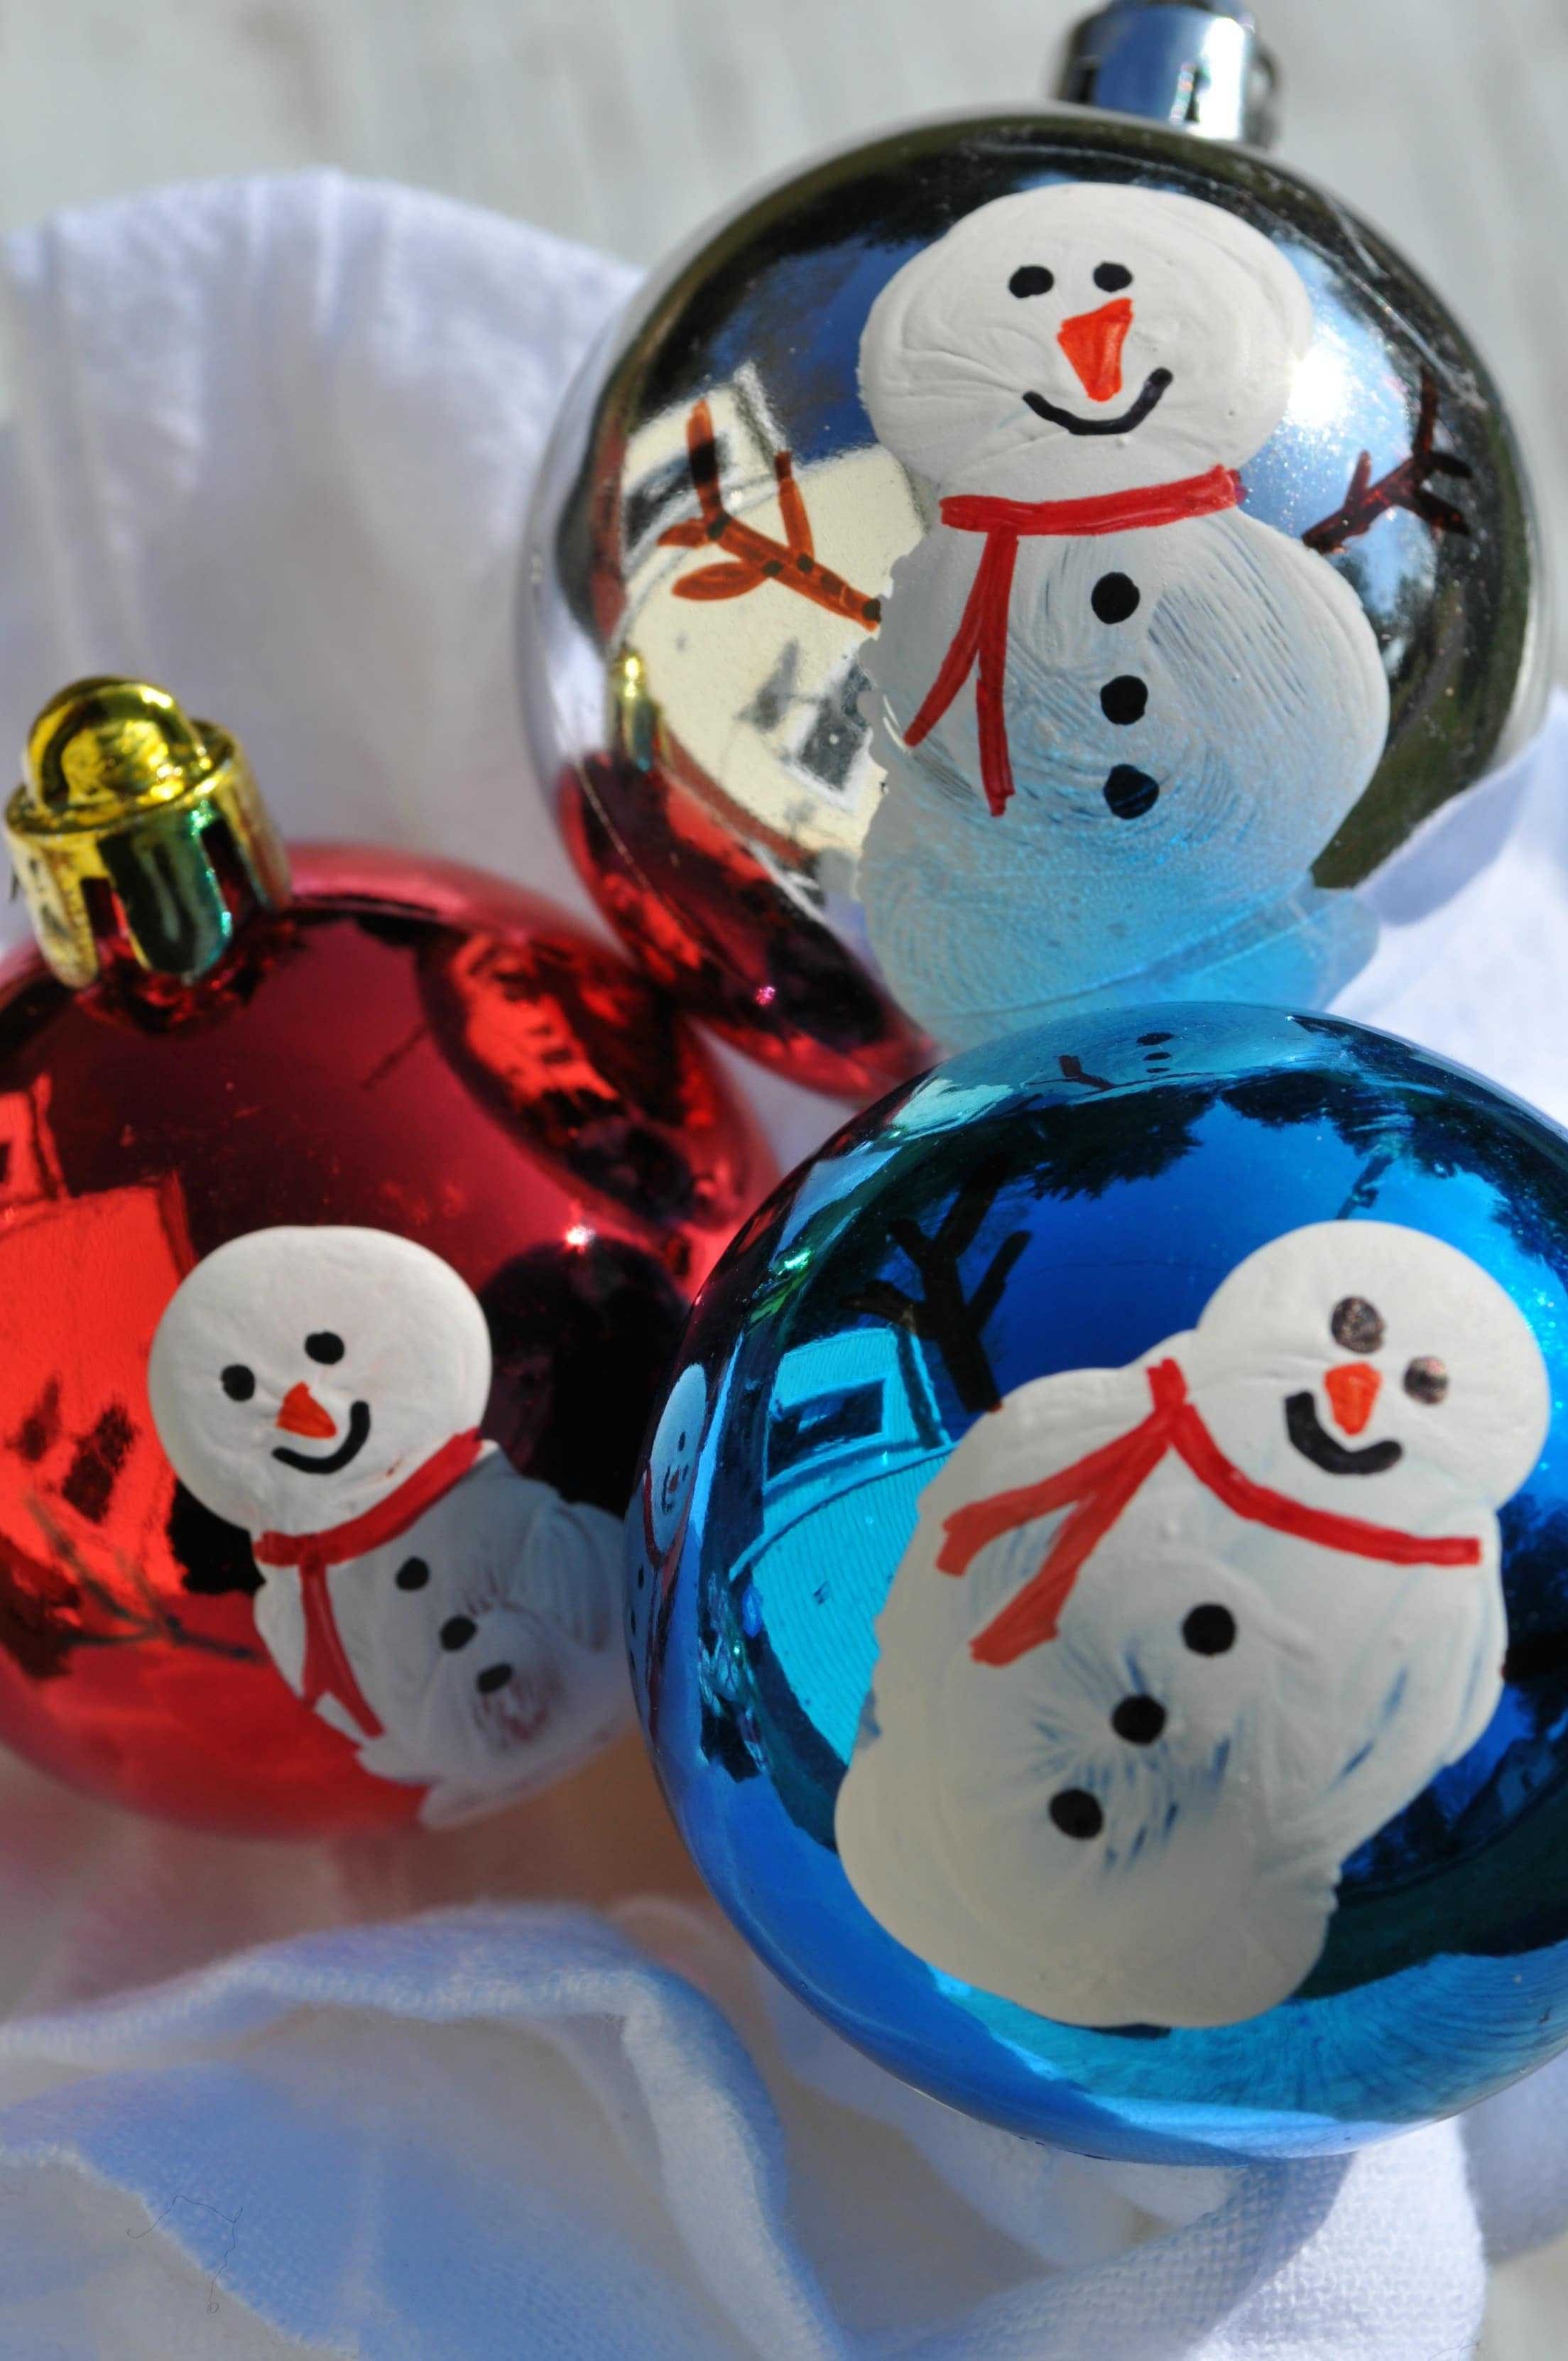 Best Of Homemade Christmas ornaments Thumbprint Snowmen the Christmas Snowman Decorations Of Adorable 41 Models Christmas Snowman Decorations